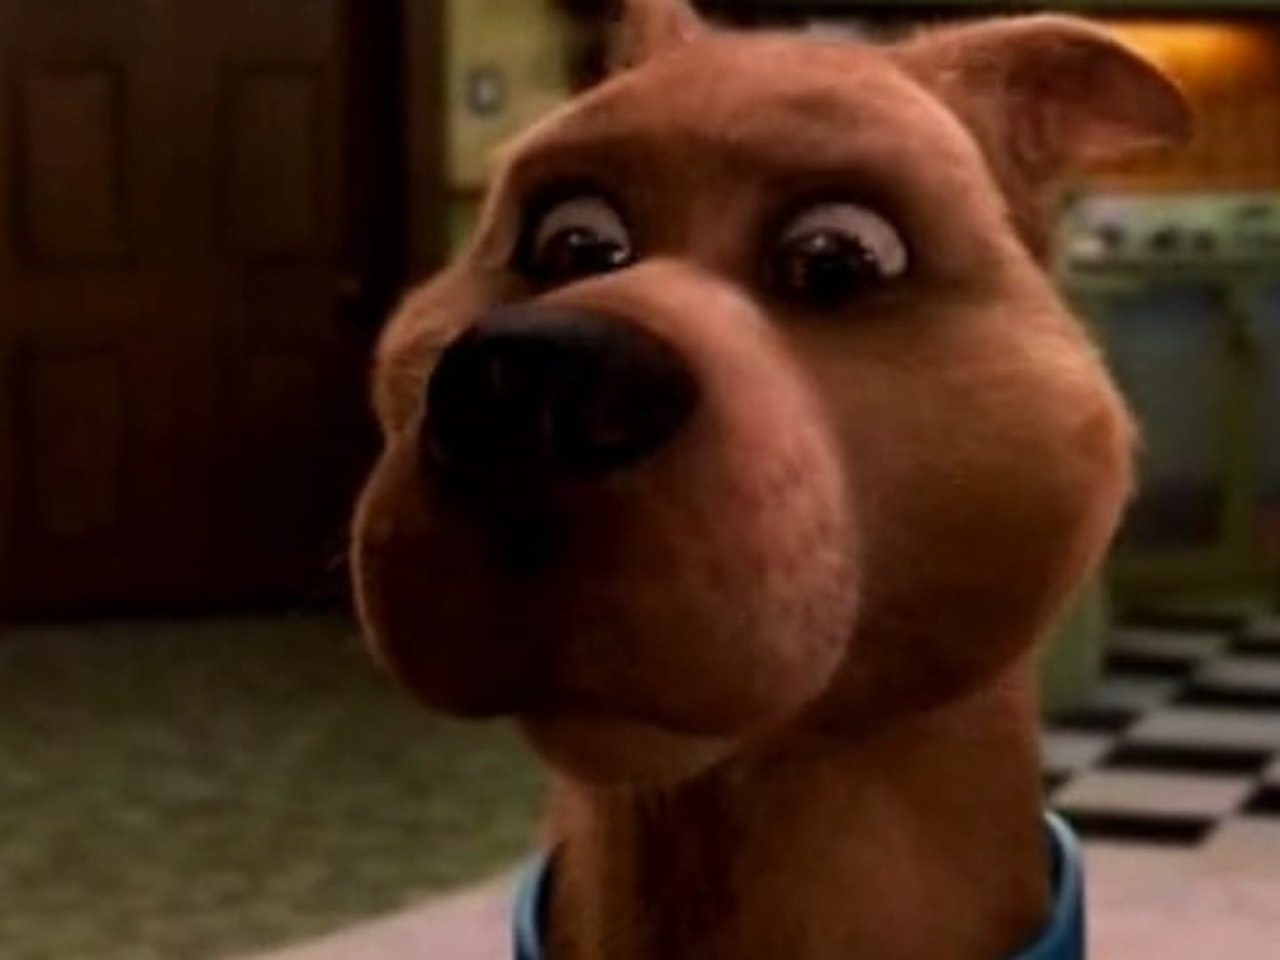 ScoobyDoo Fart Sequence